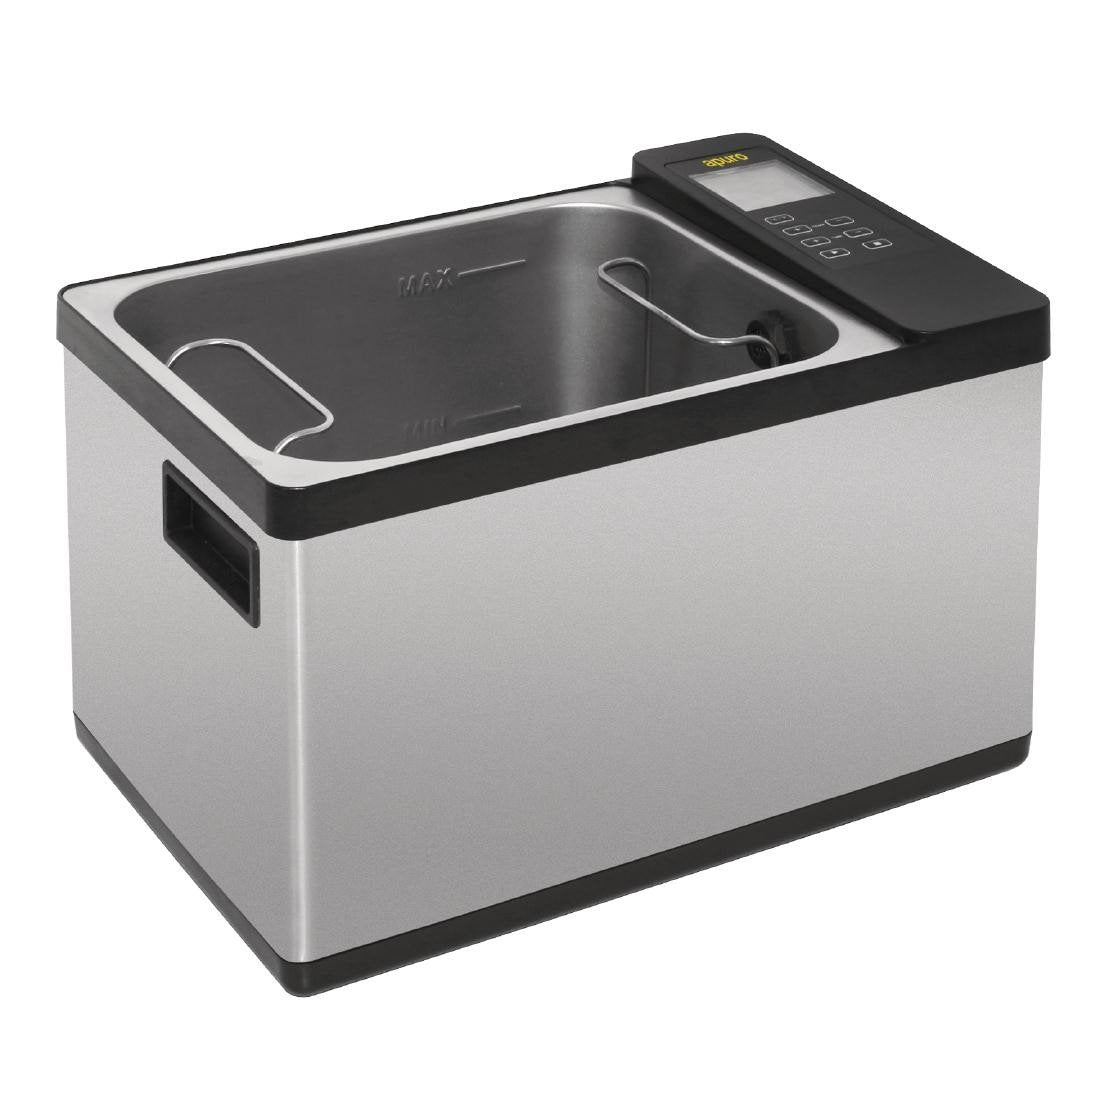 Sous Vide Water Bath Cooker for Home & Commercial by Apuro Sous Vide Machine Apuro